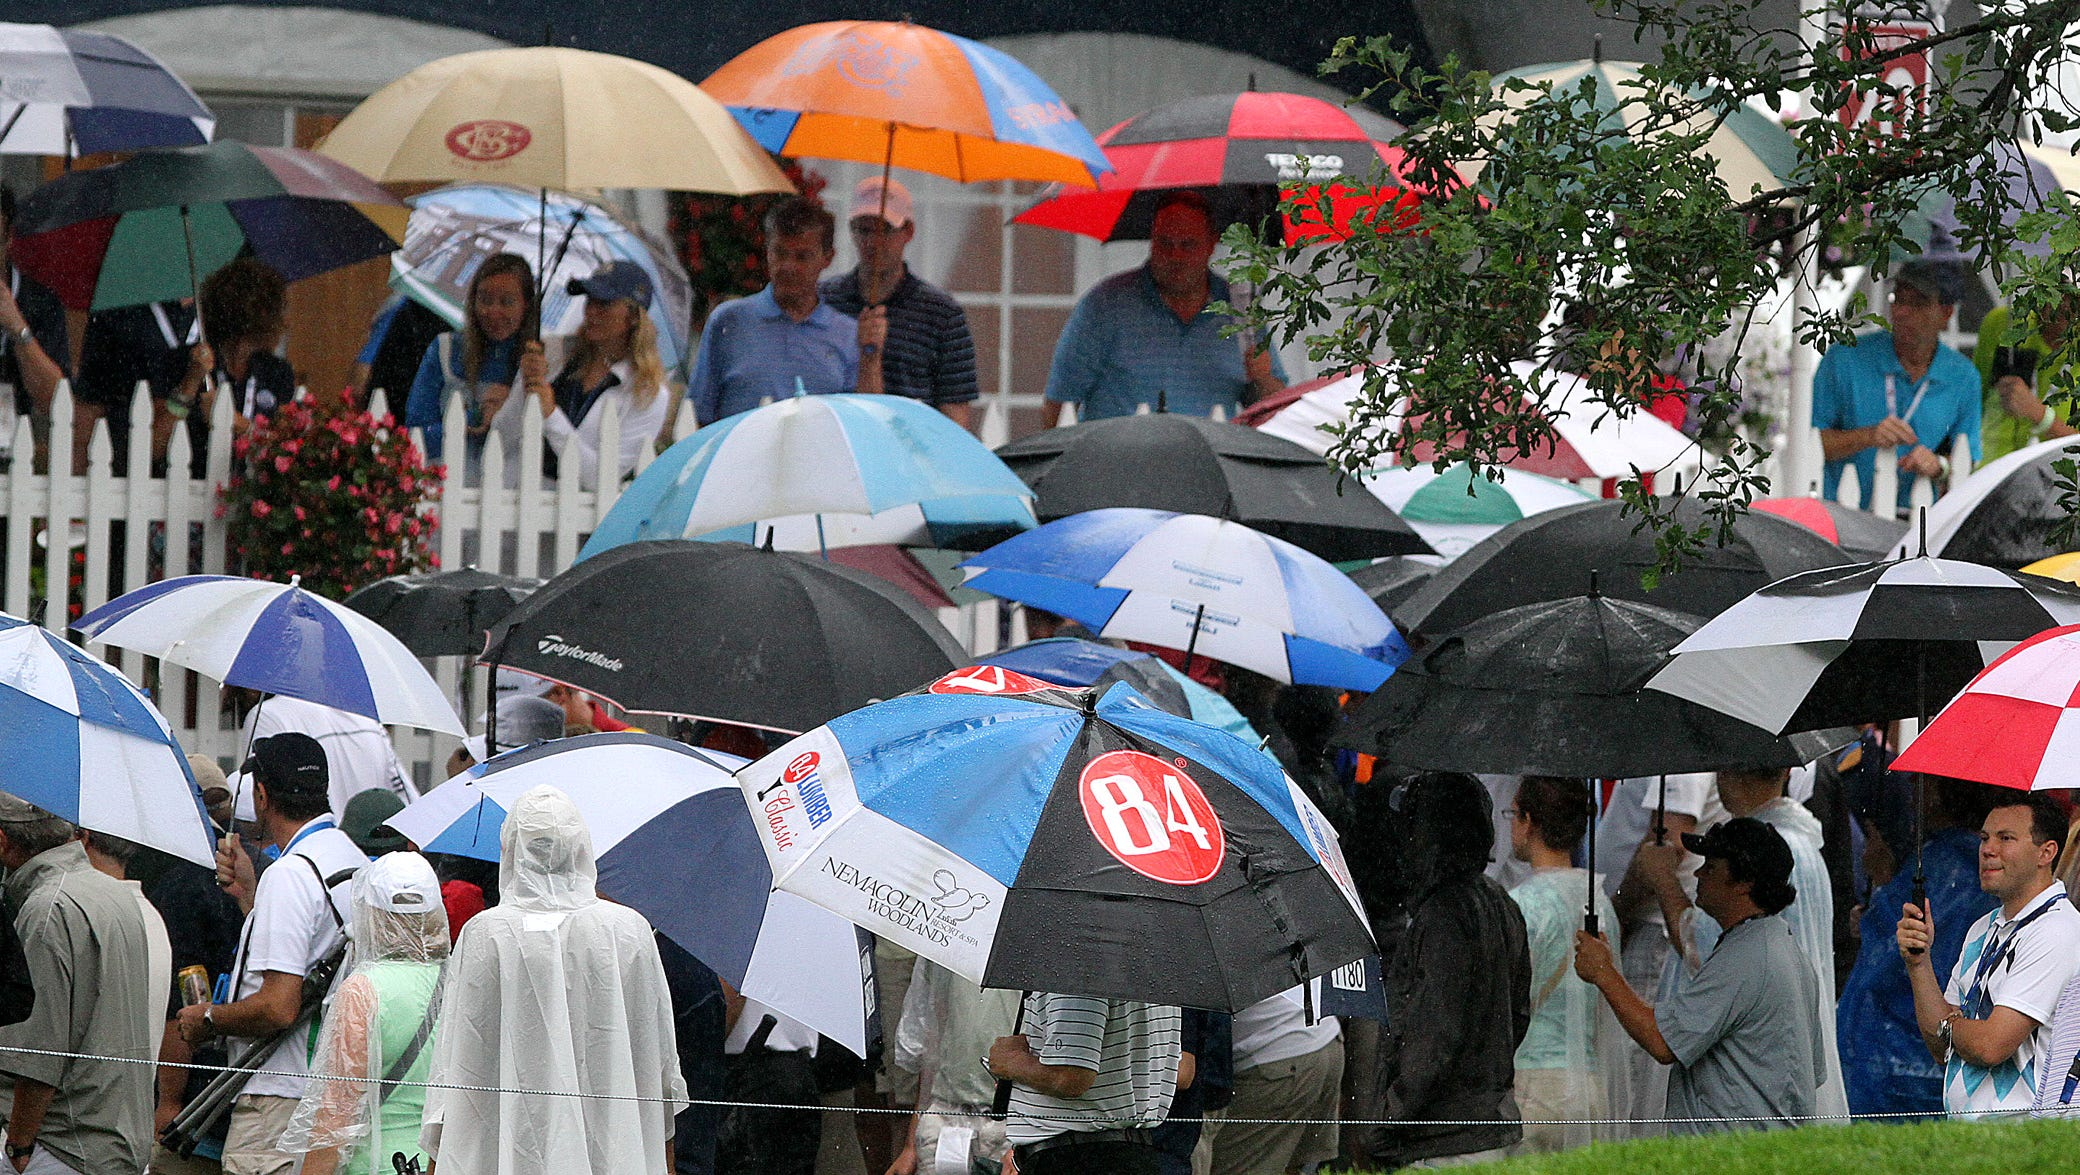 Spectators line the course in umbrellas Friday.